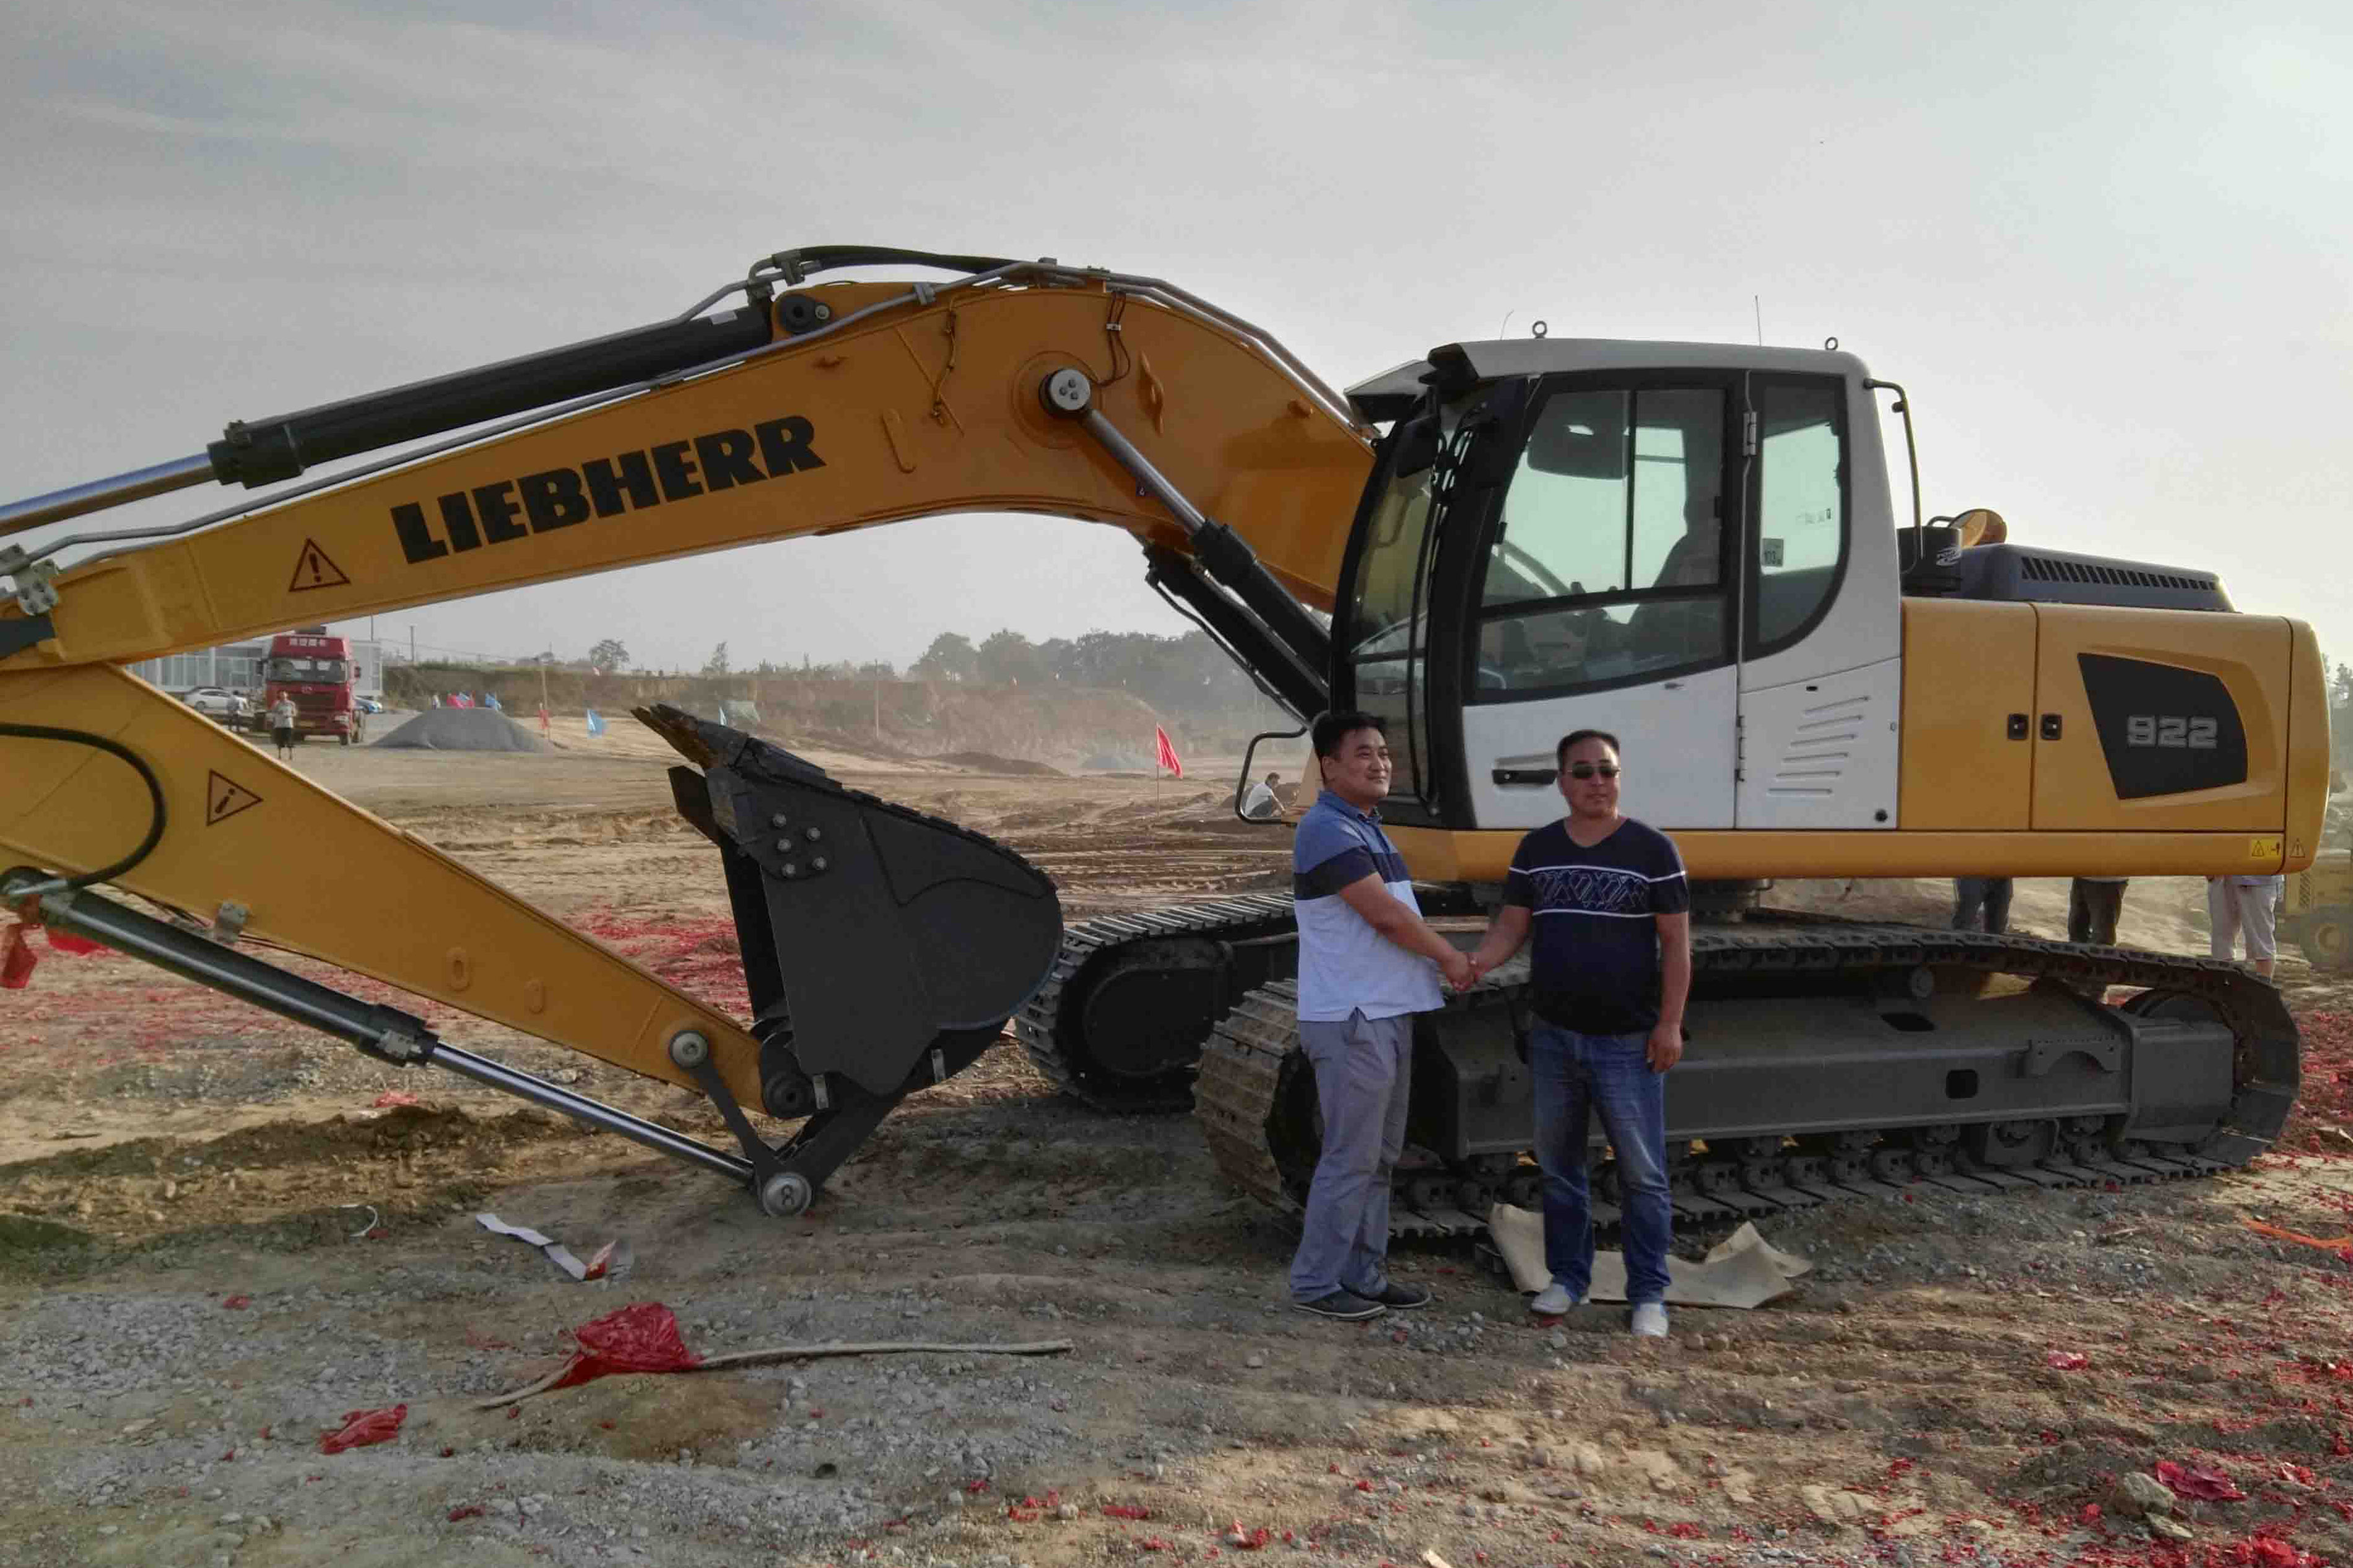 From left to right: Mr Han Daji (Liebherr dealer) and Liu Jianwei (managing director ofXi'an Tianyi Earth-moving Co. Ltd manager).